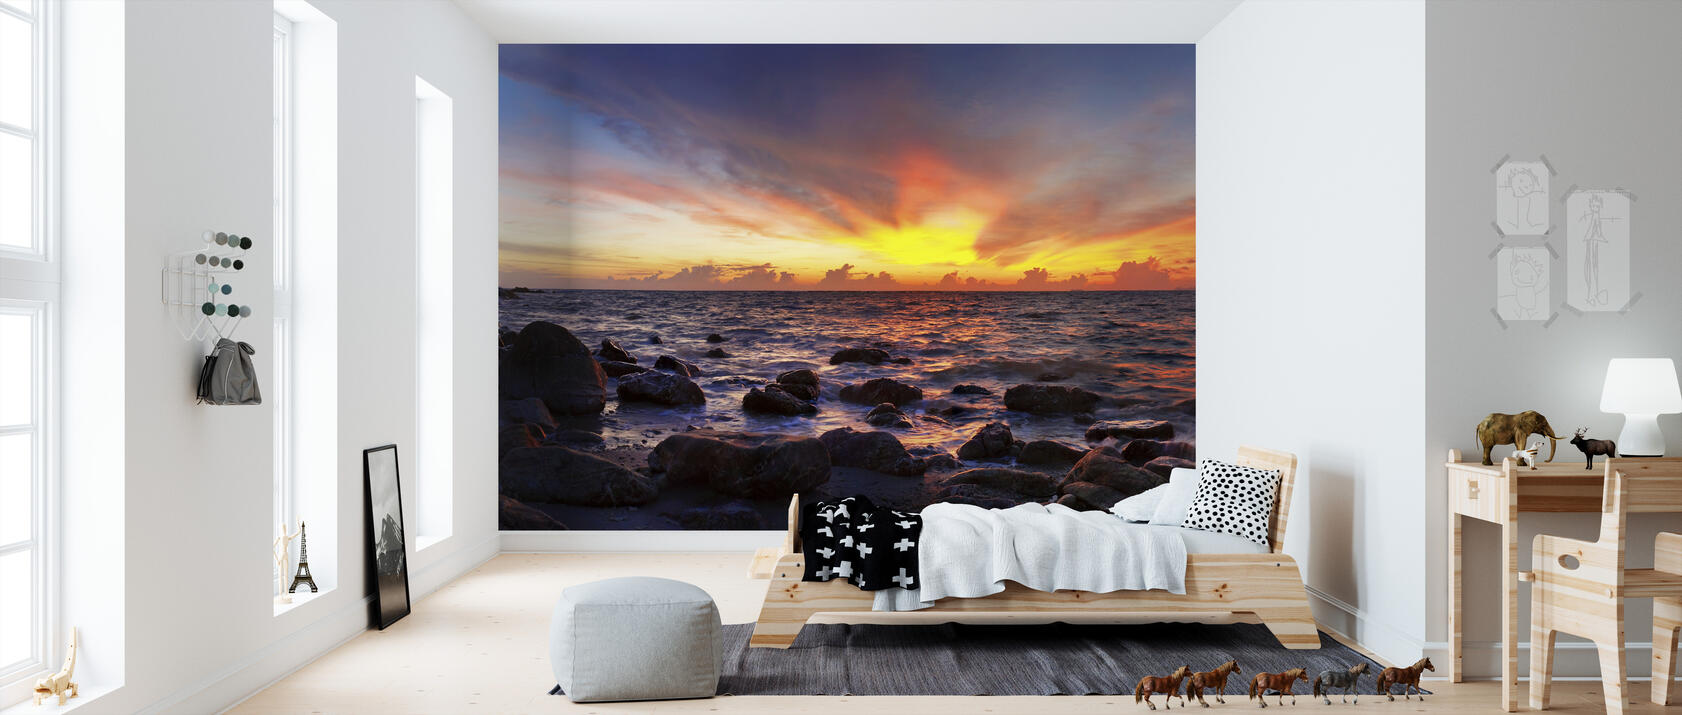 wild sunset fototapete nach ma photowall. Black Bedroom Furniture Sets. Home Design Ideas